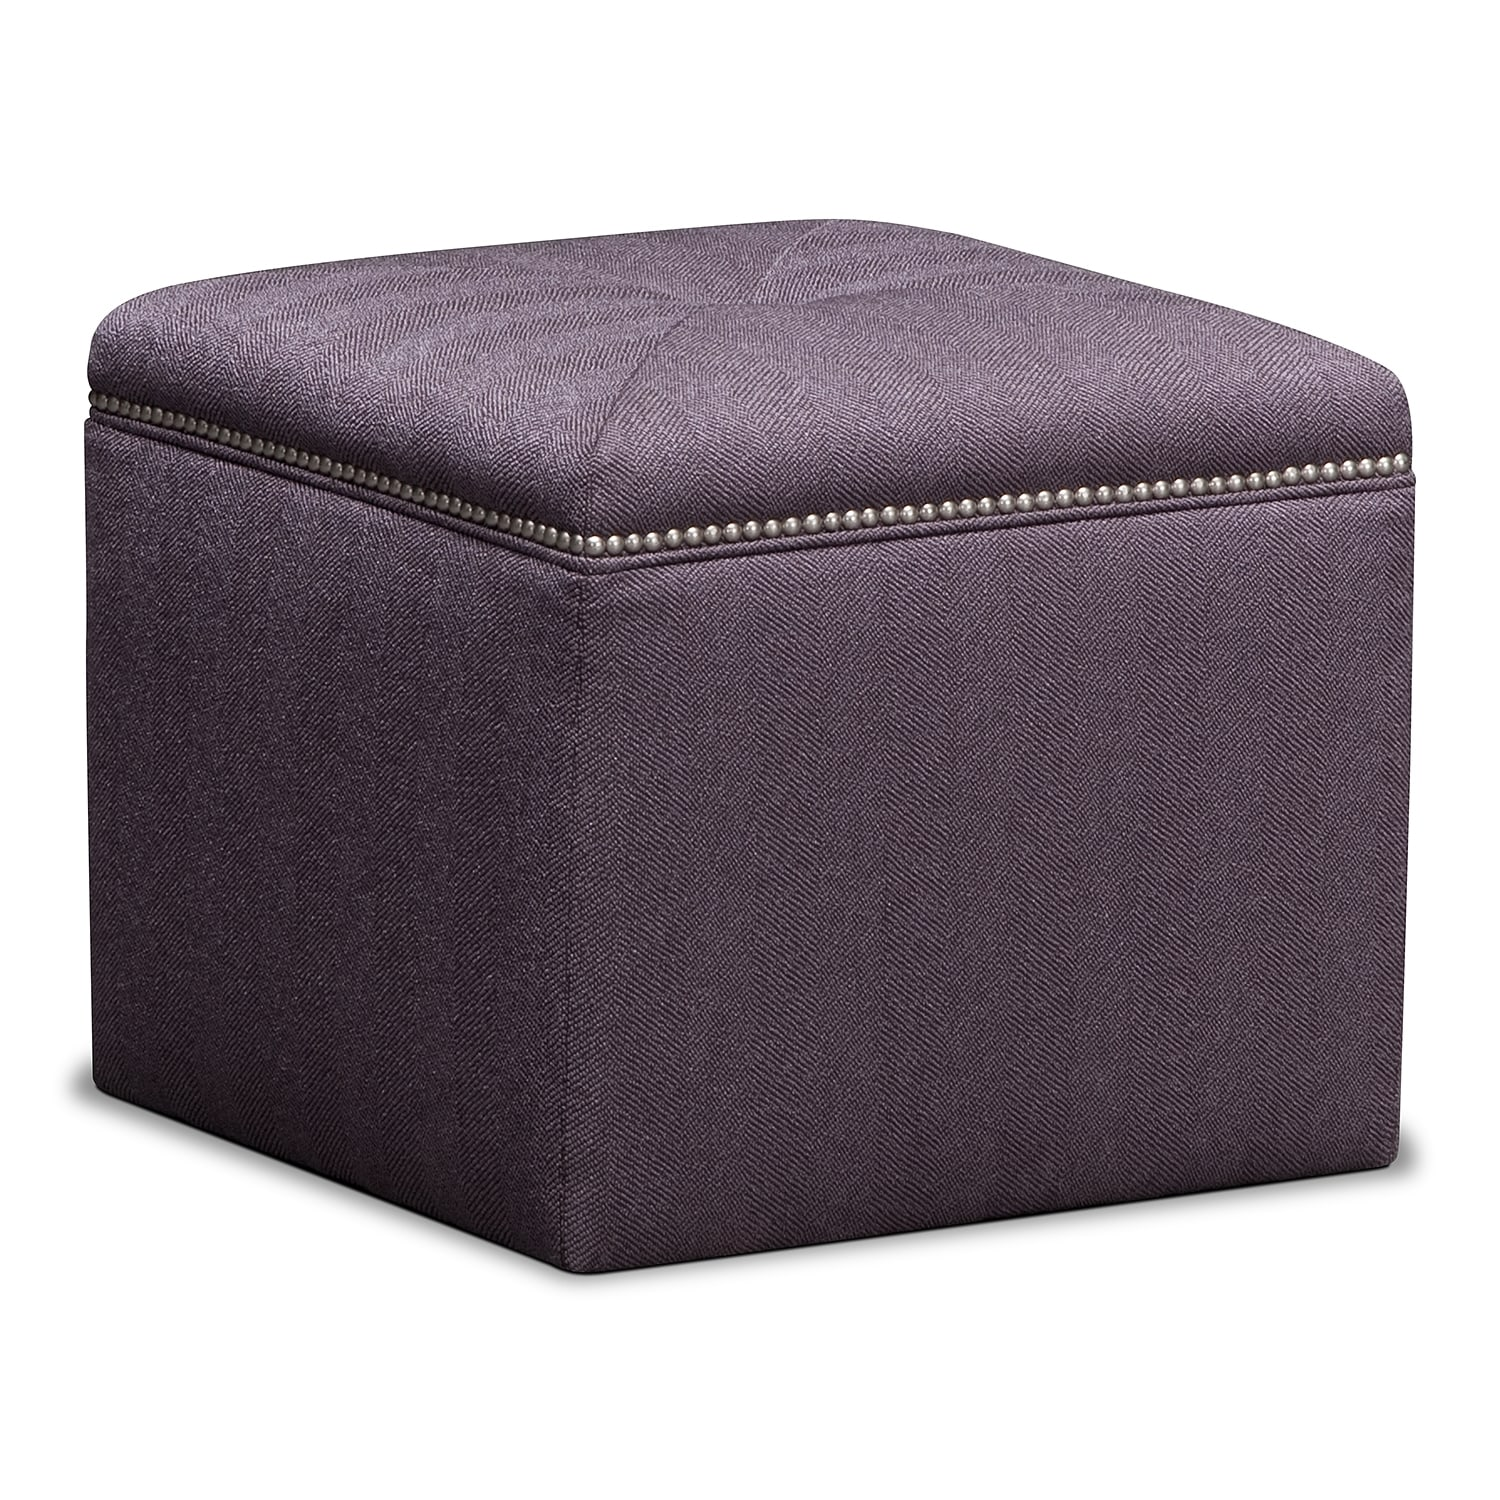 Value city furniture for Living room ottoman